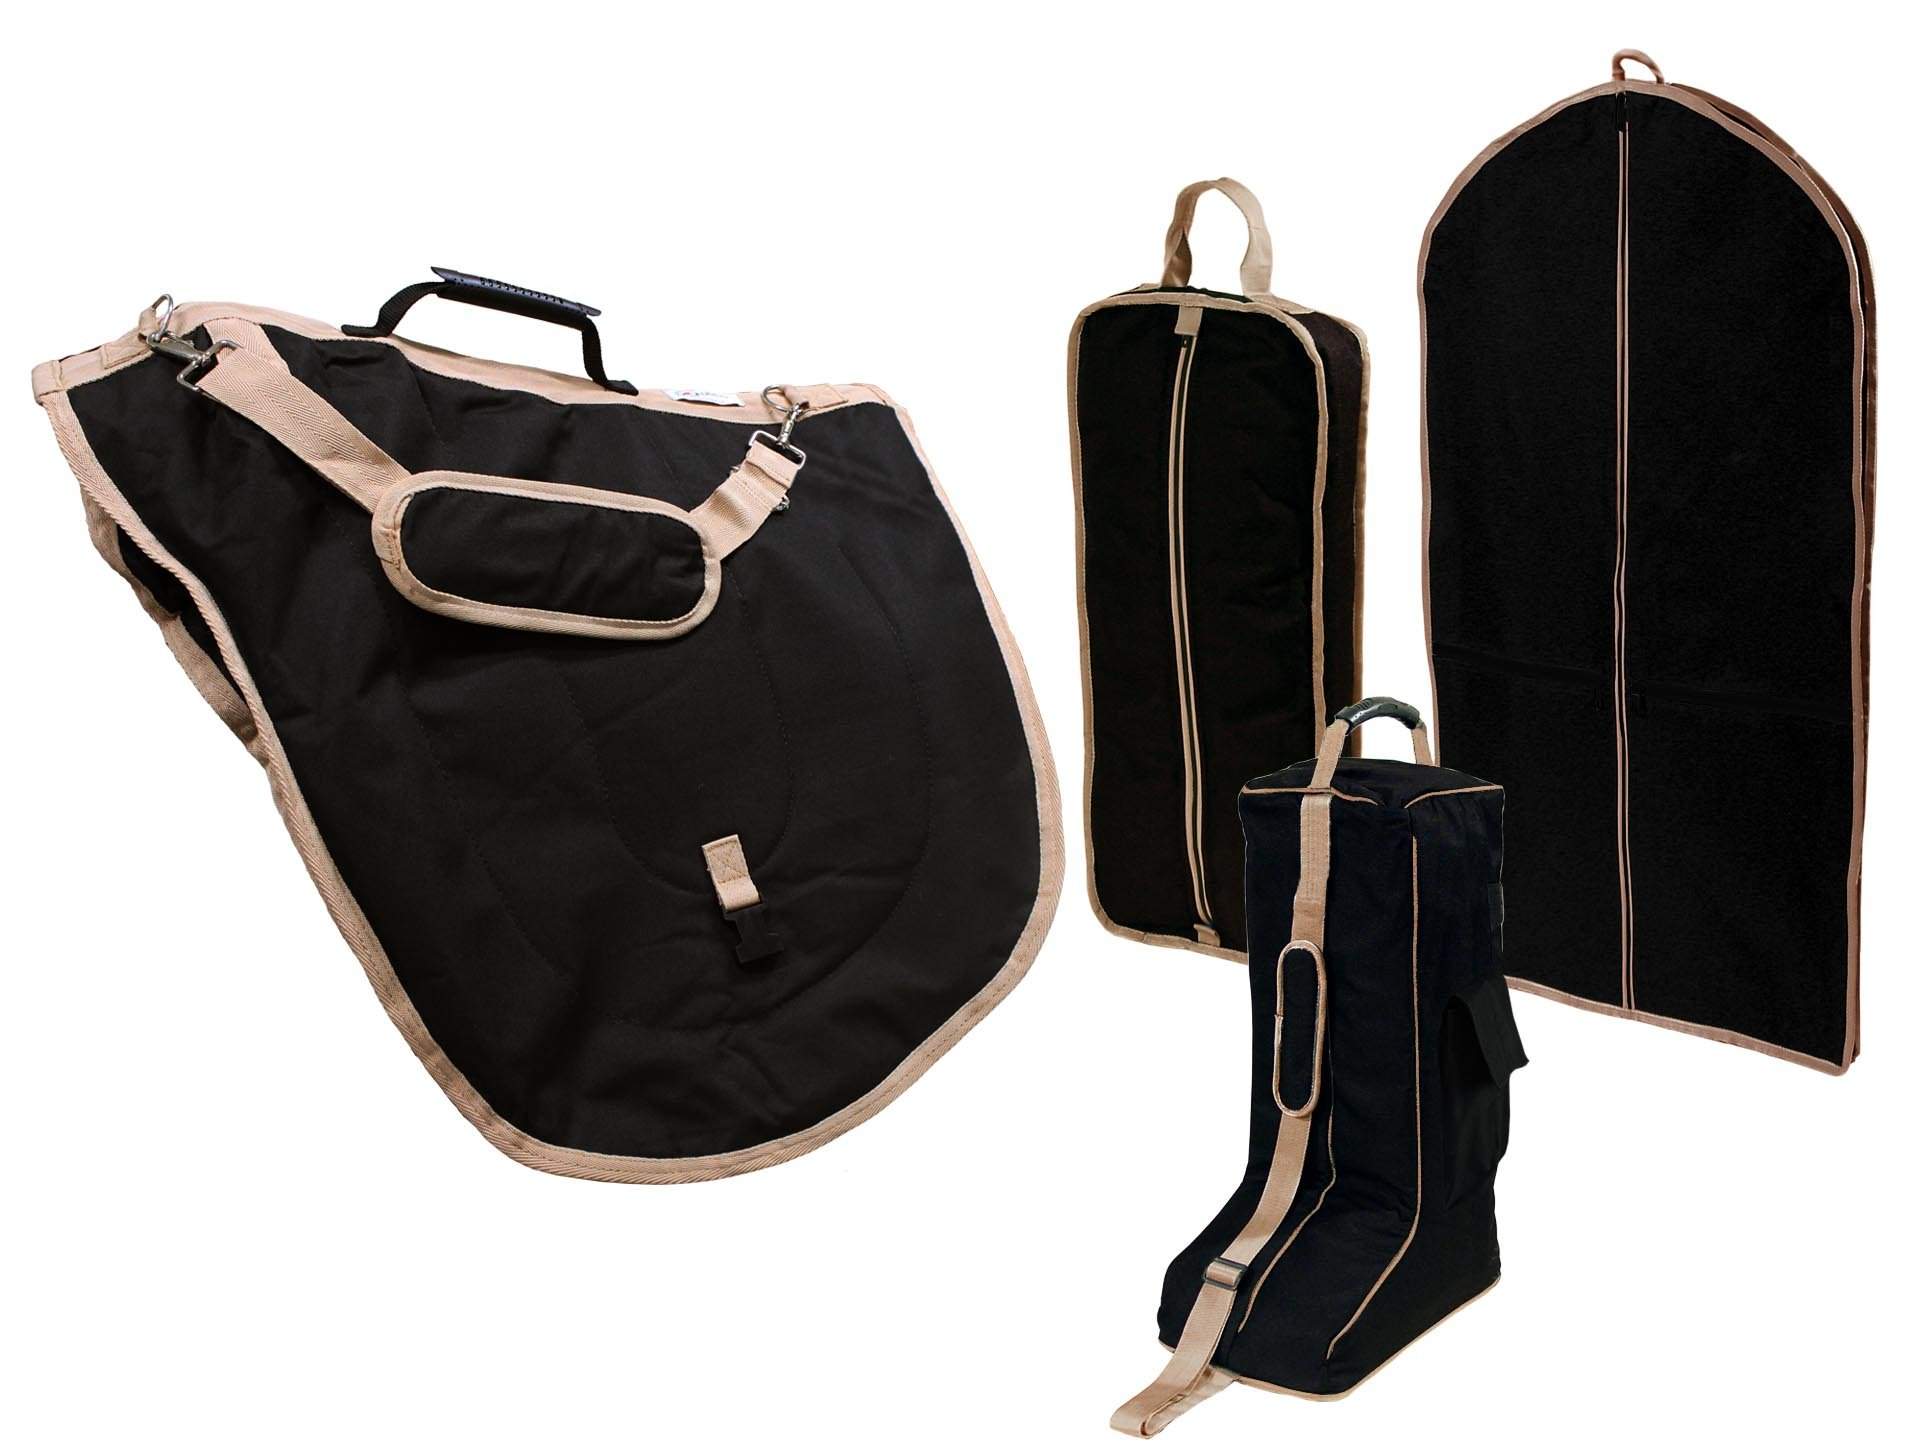 Derby English Horse Saddle, Bridle, Boot, and Garment Carry Bag Set with One year warranty by Derby Originals (Image #1)